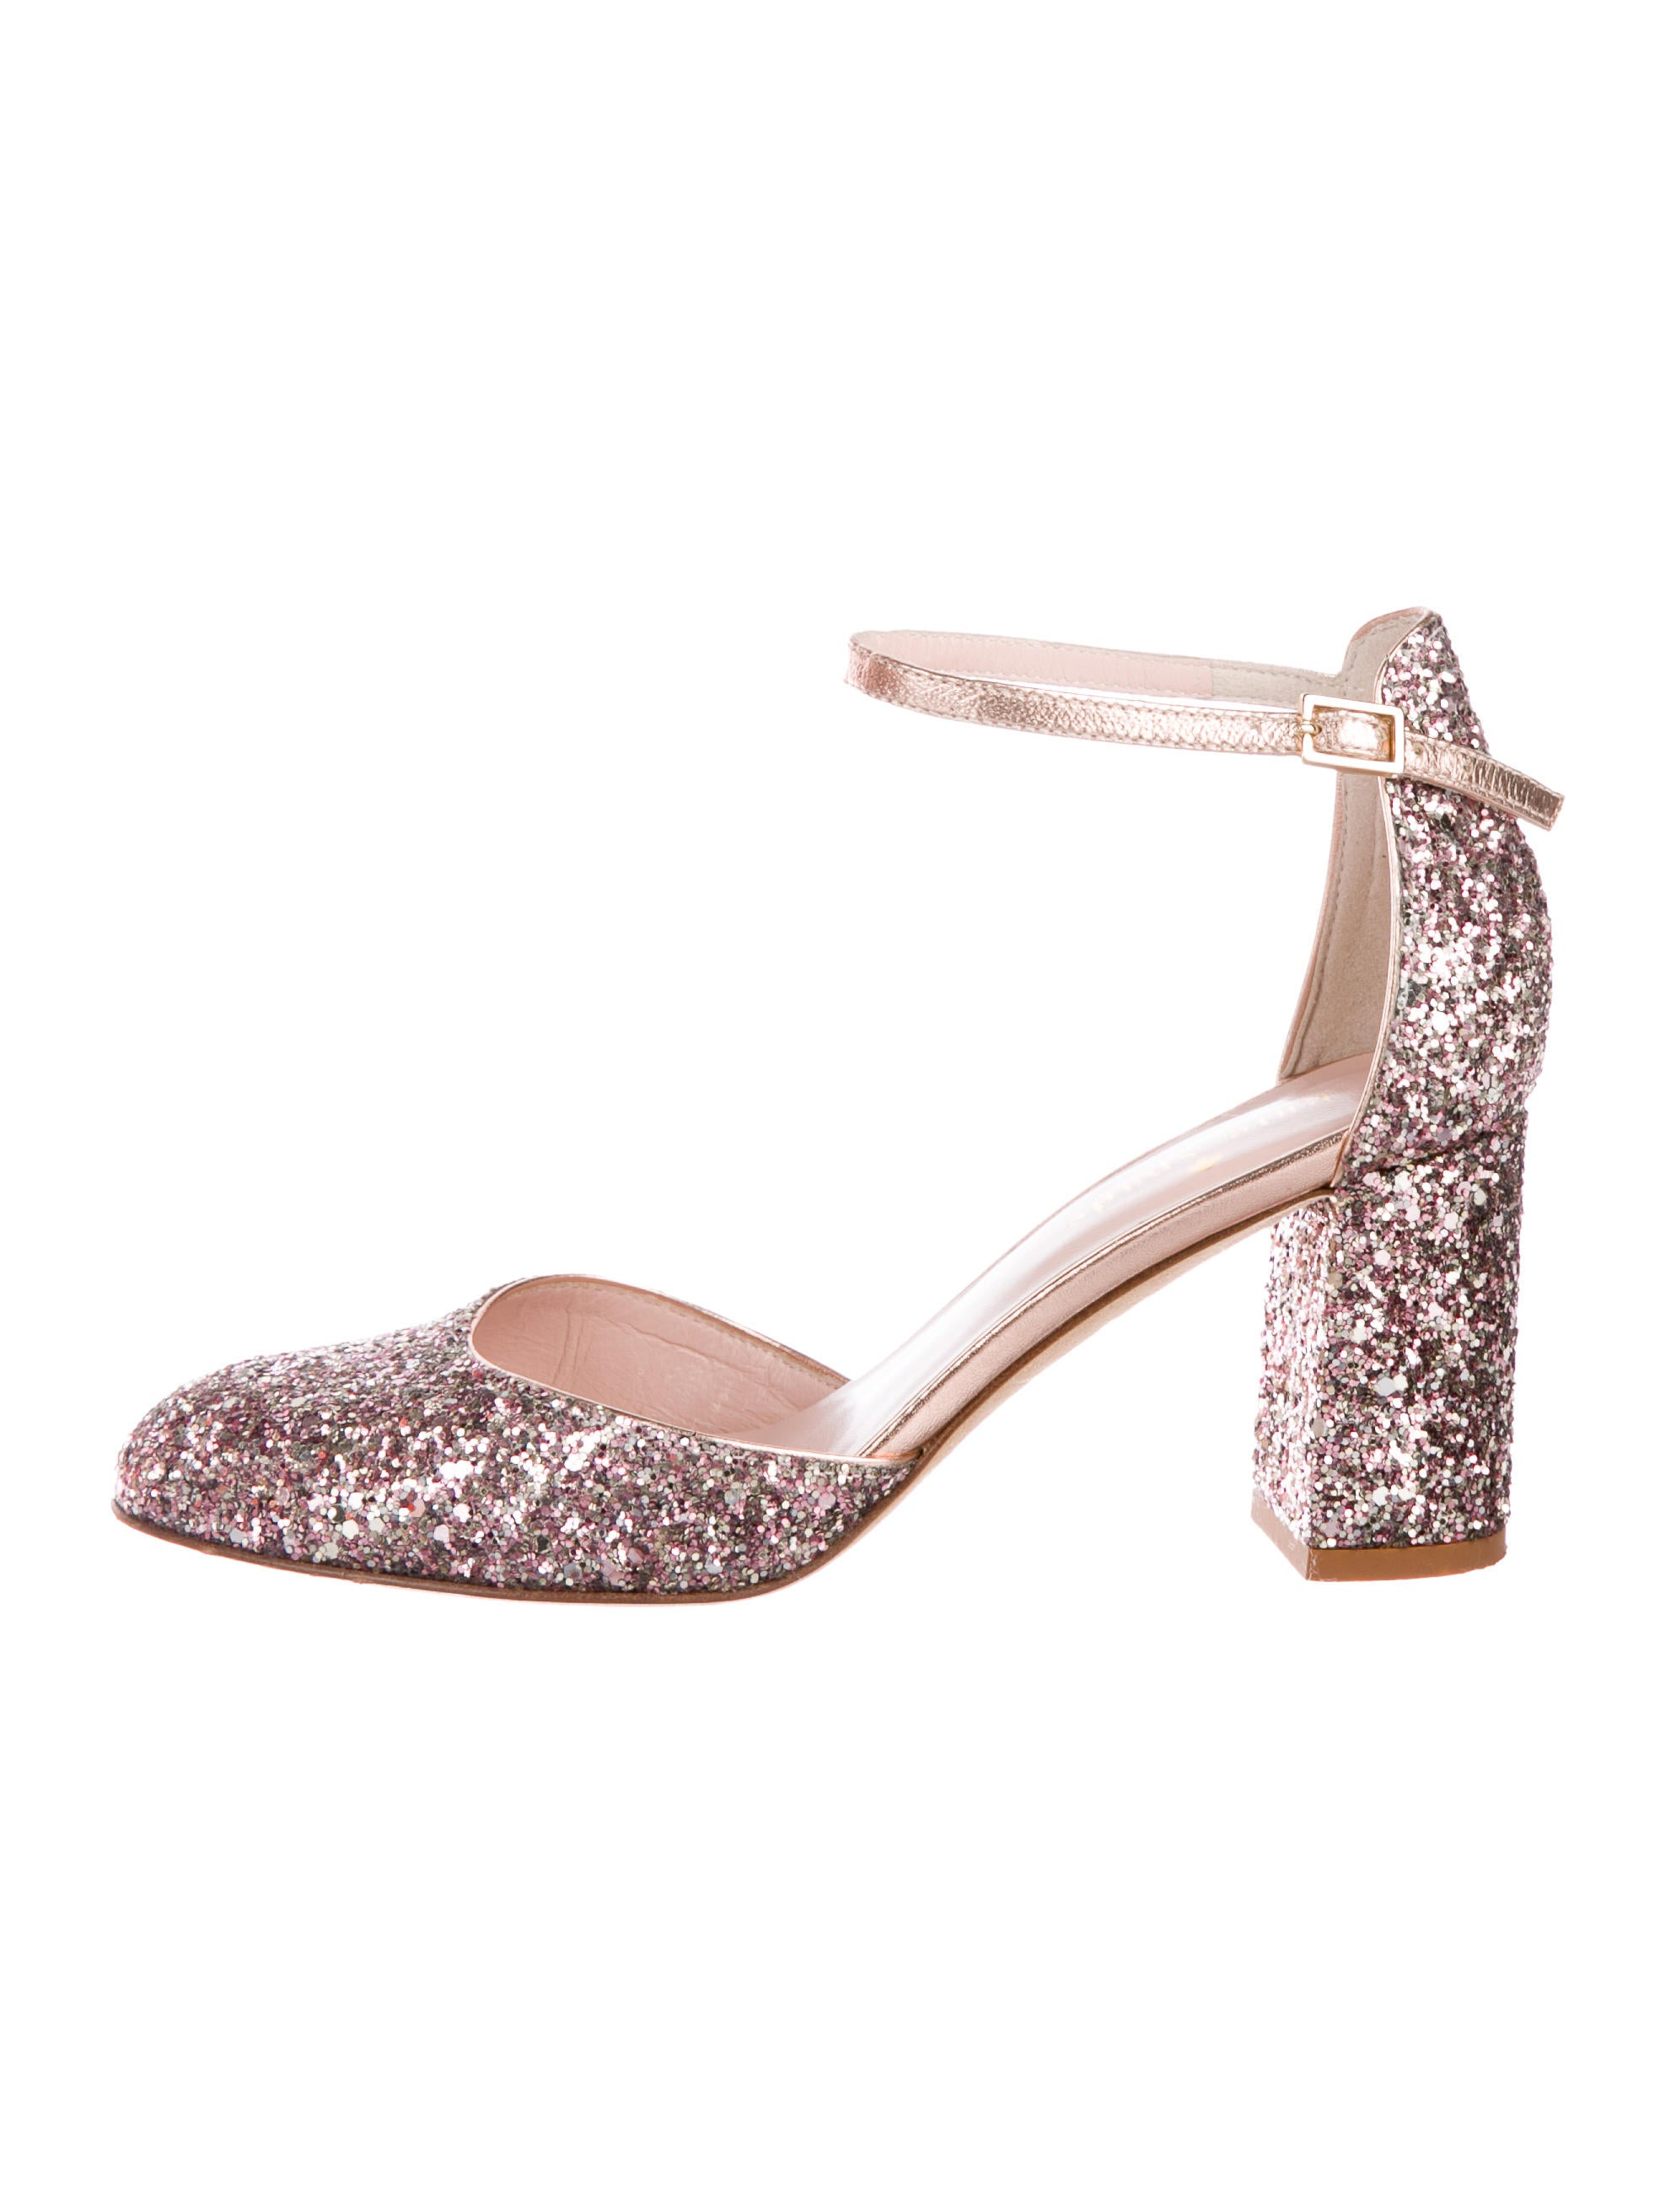 cbbd5d08330 Kate Spade New York Abigail d Orsay Glitter Pumps - Shoes ...